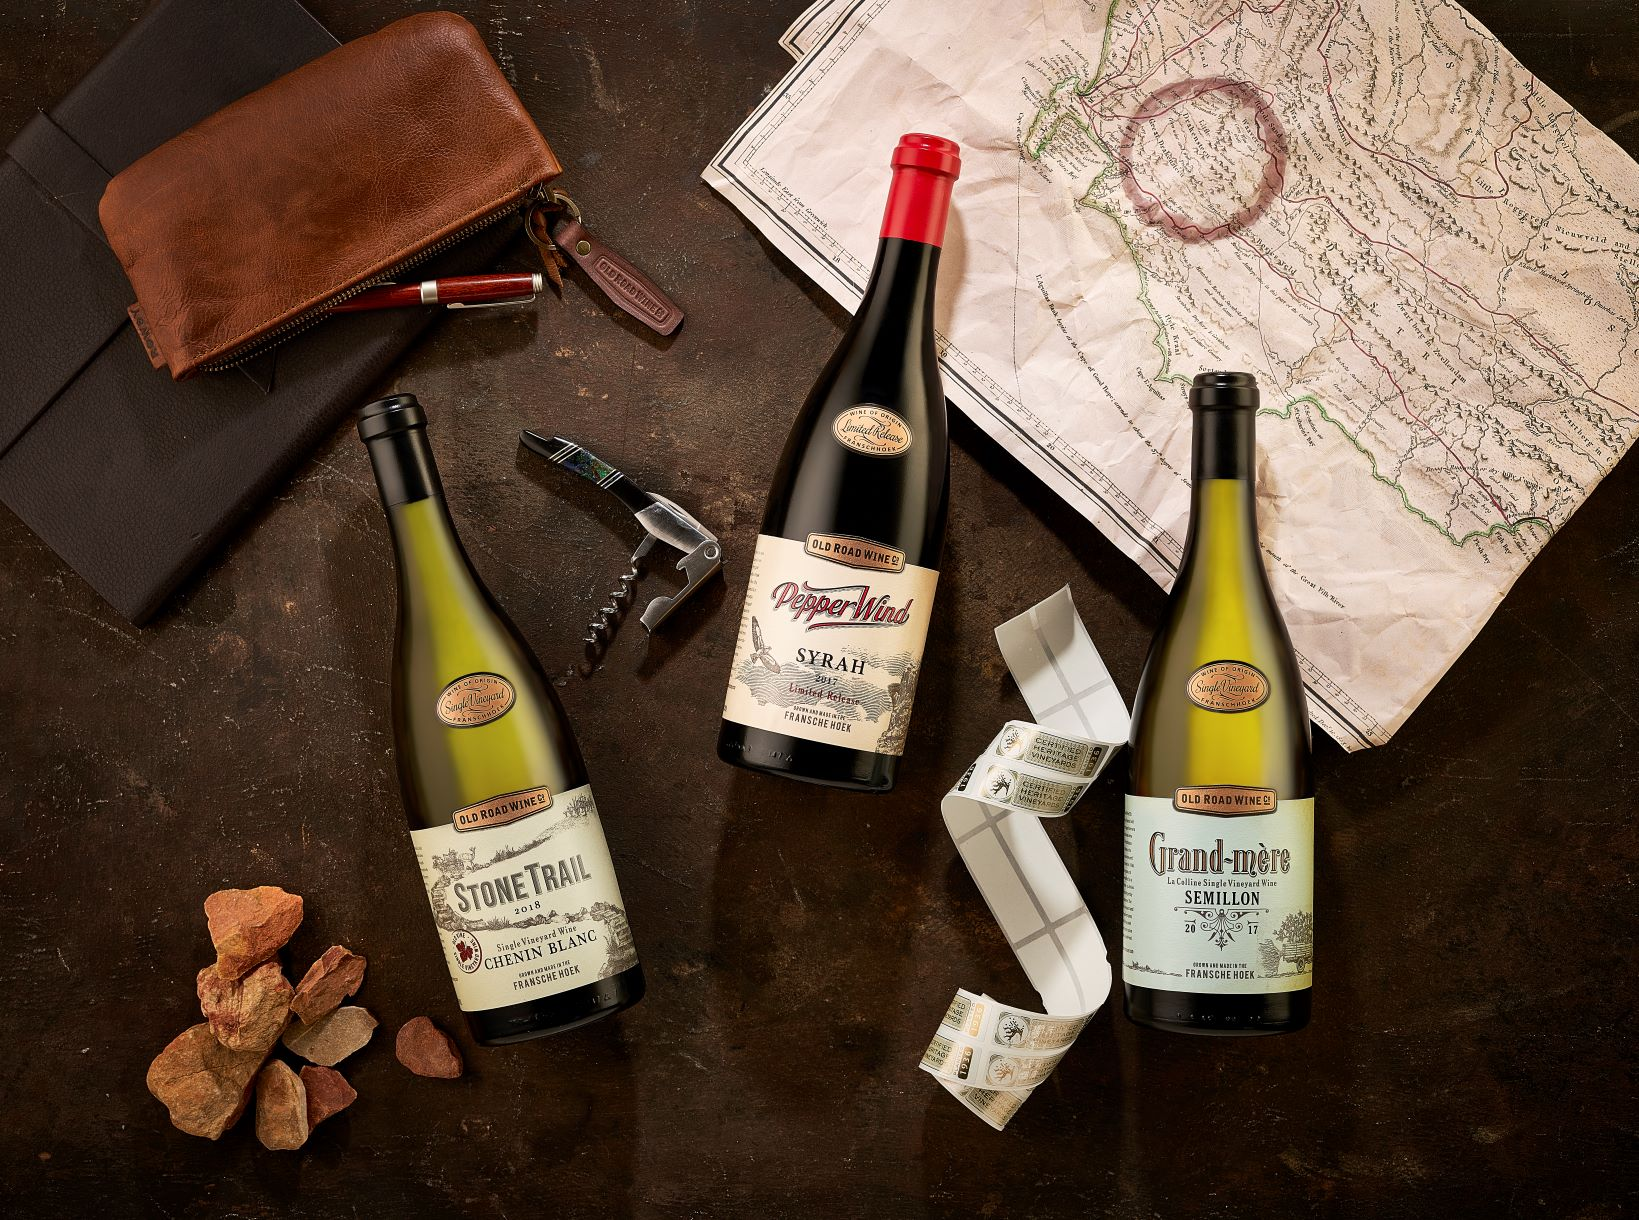 Franschhoek's Old Road Wine Co. Walks Tall in Global Wine Awards Arena photo